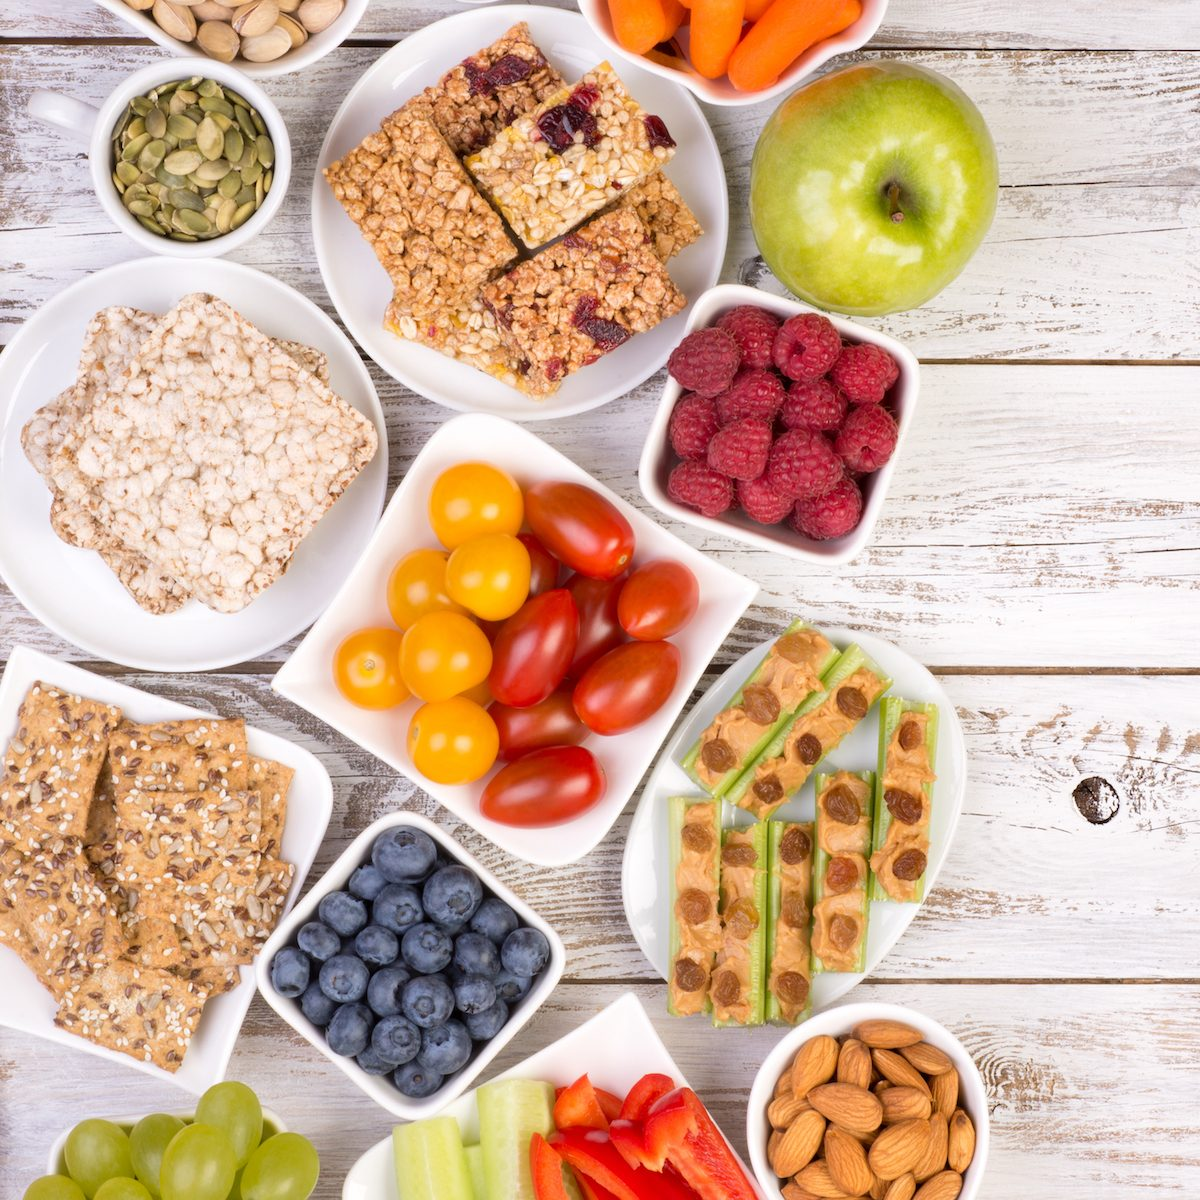 Healthy snacks on wooden table